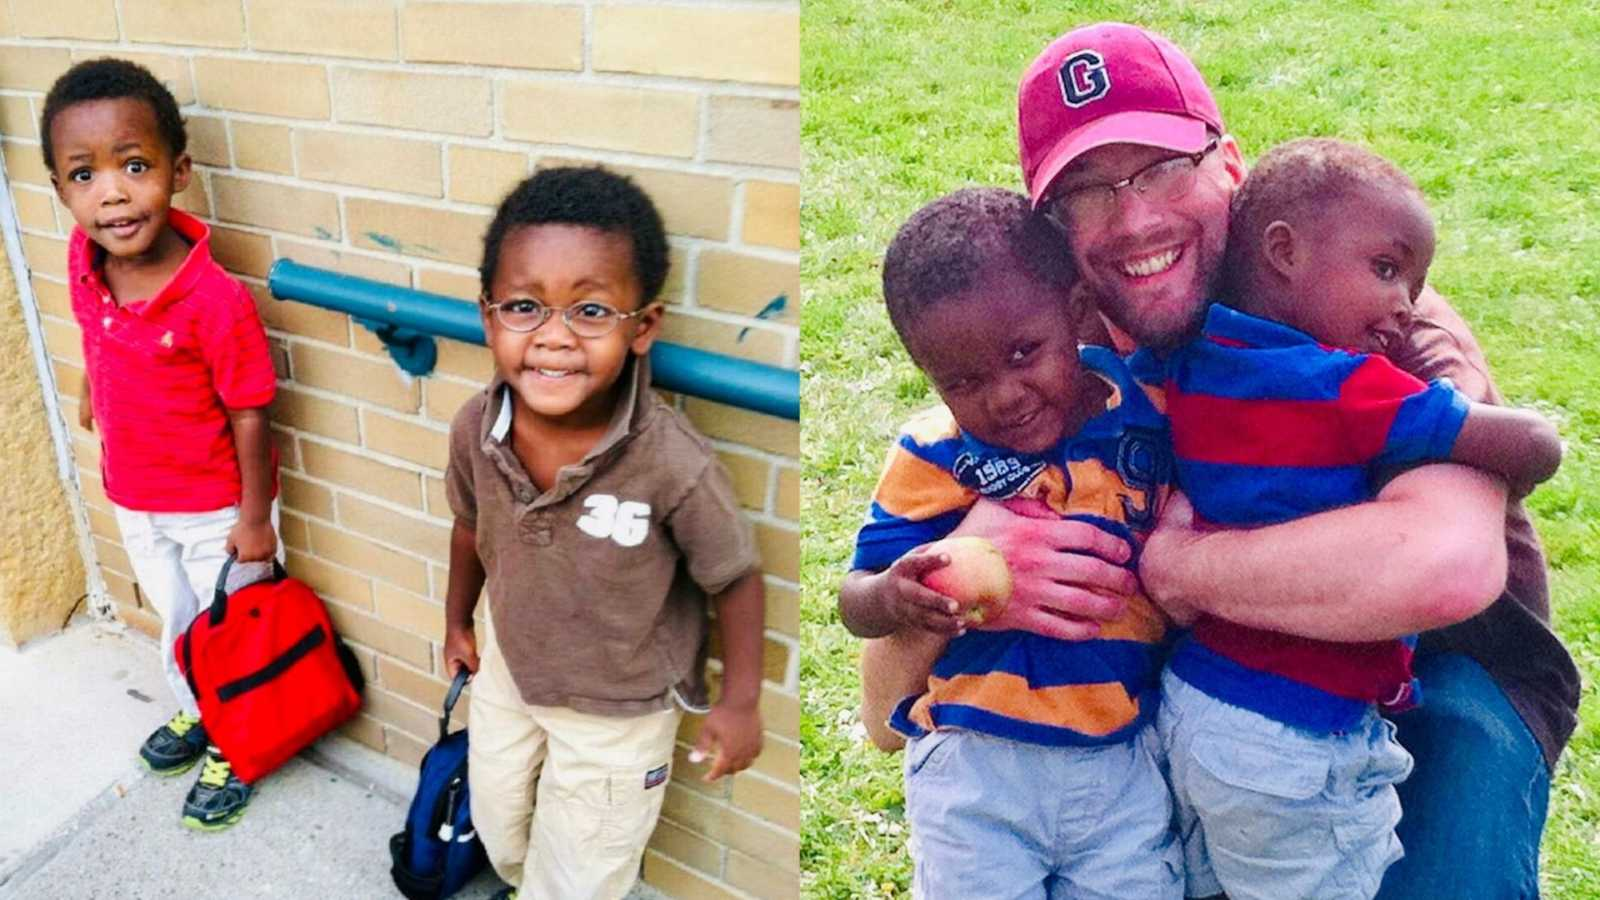 'The adoption date changed. Then the unthinkable happened. My darling husband collapsed from a seizure.': Husband dies 2 weeks before twin adoption finalized to become 'official family of 5' – Love What Matters